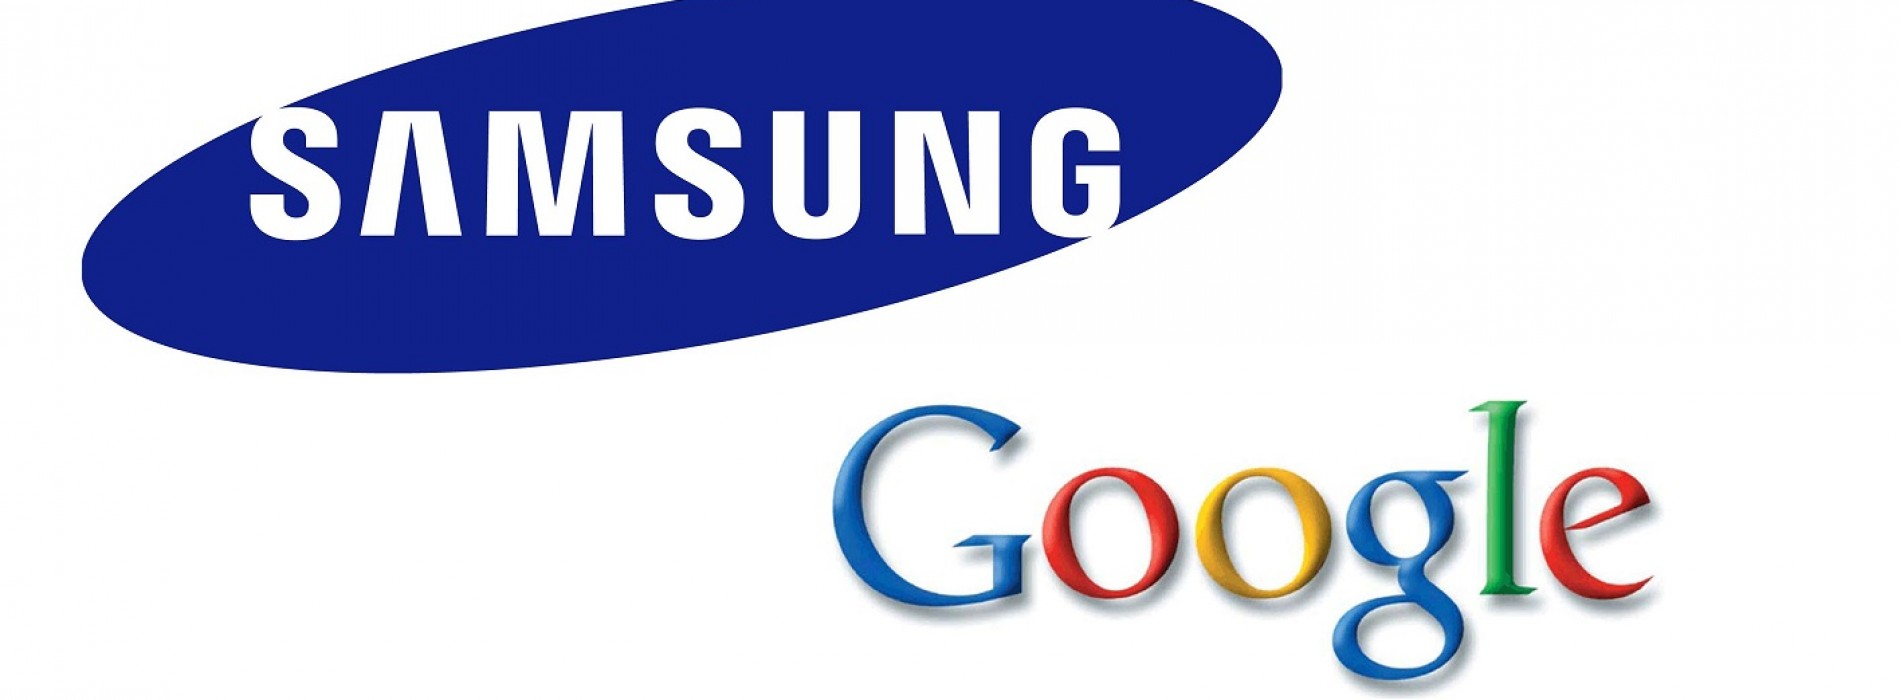 Samsung to back down on copying Google apps